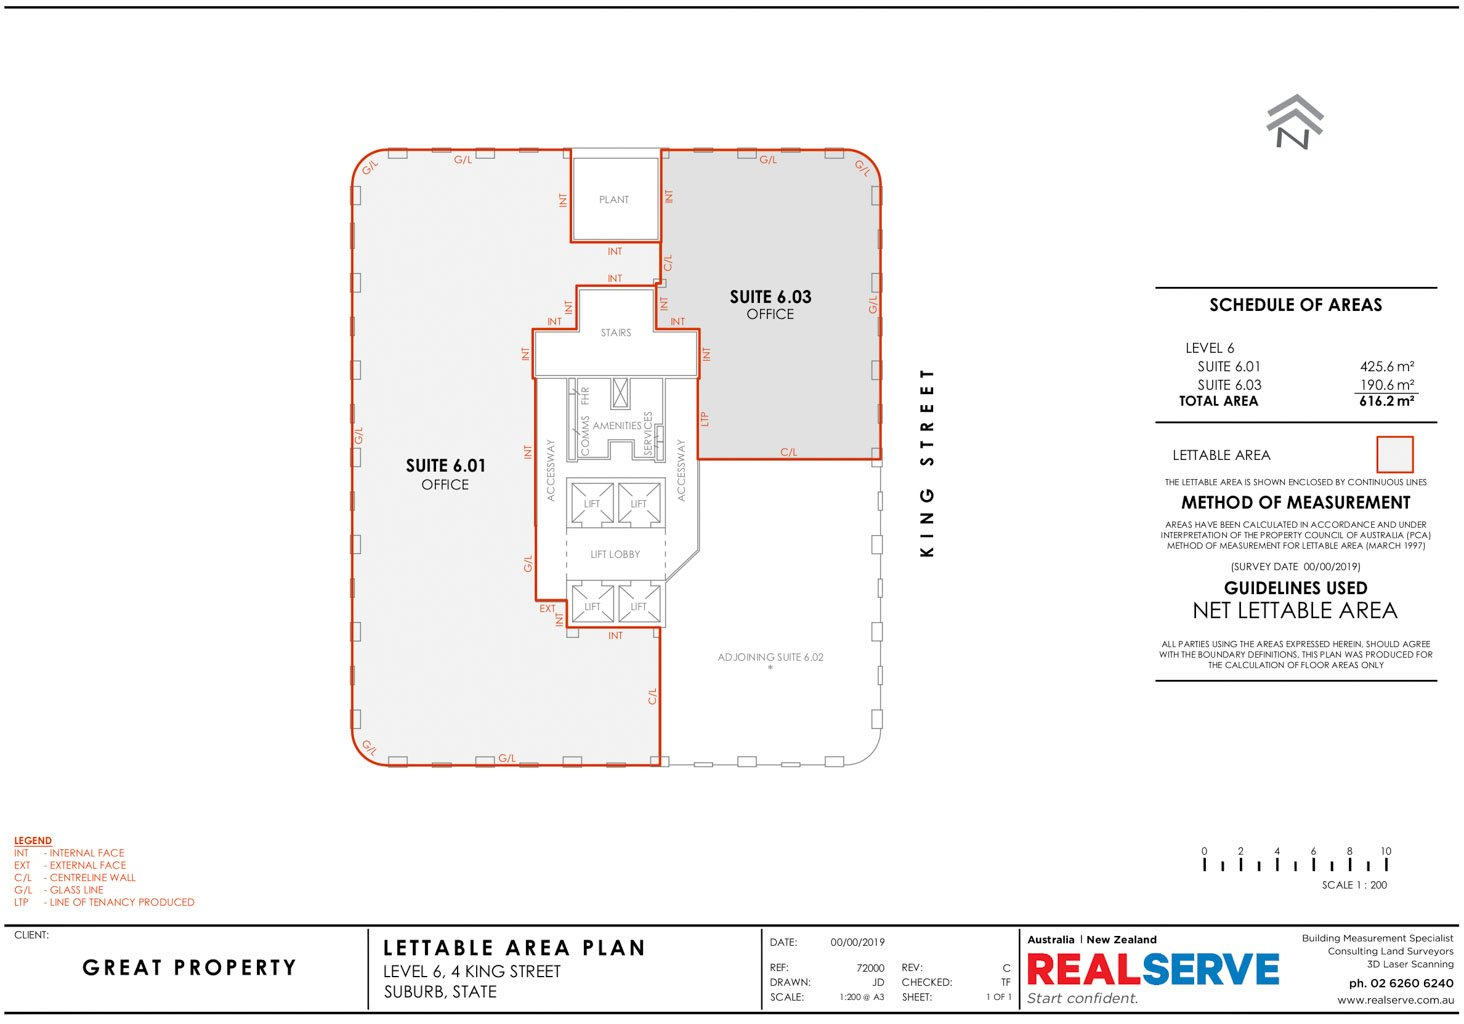 REALSERVE NET LETTABLE AREA SAMPLE DRAWING FOR A OFFICE AREA